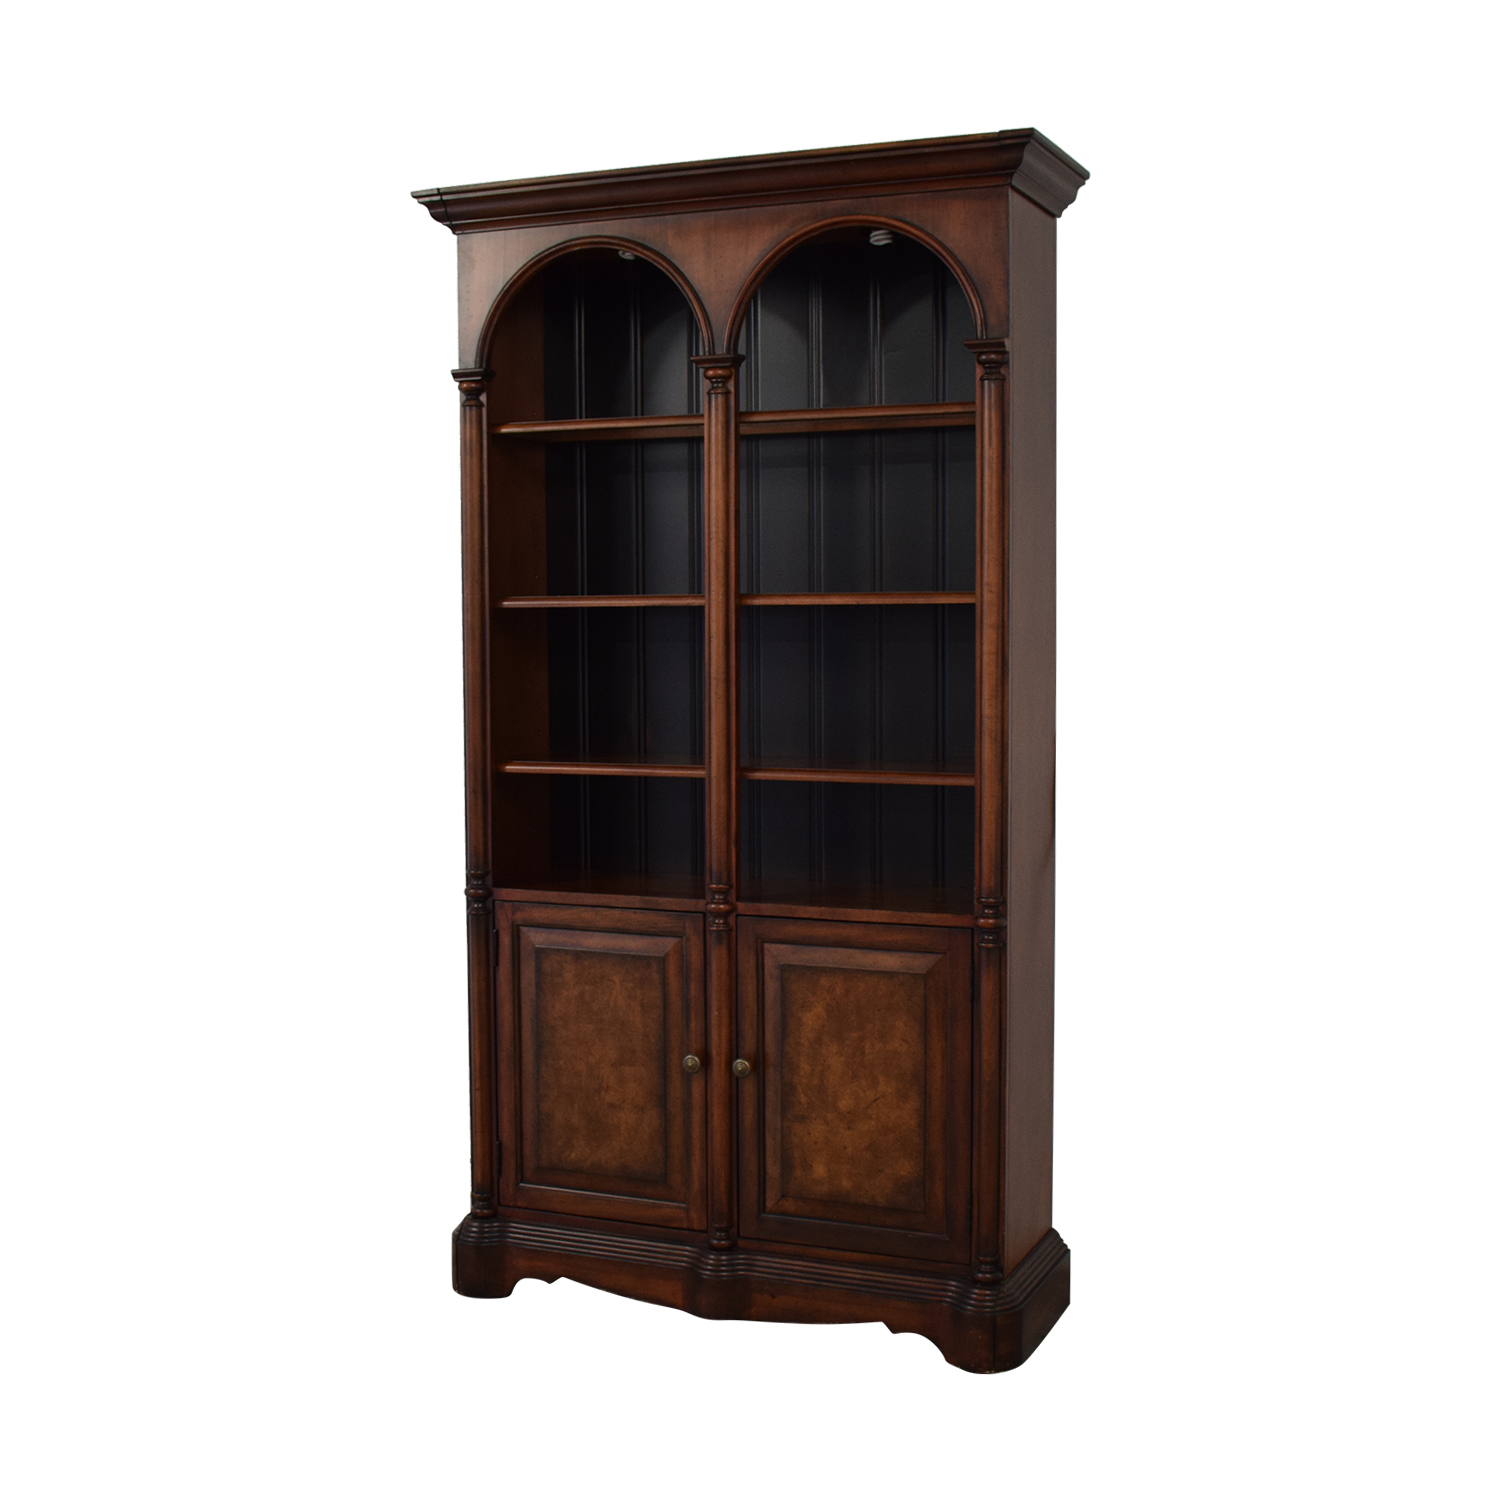 Hooker Furniture Hooker Furniture Bunching Bookcase dark brown